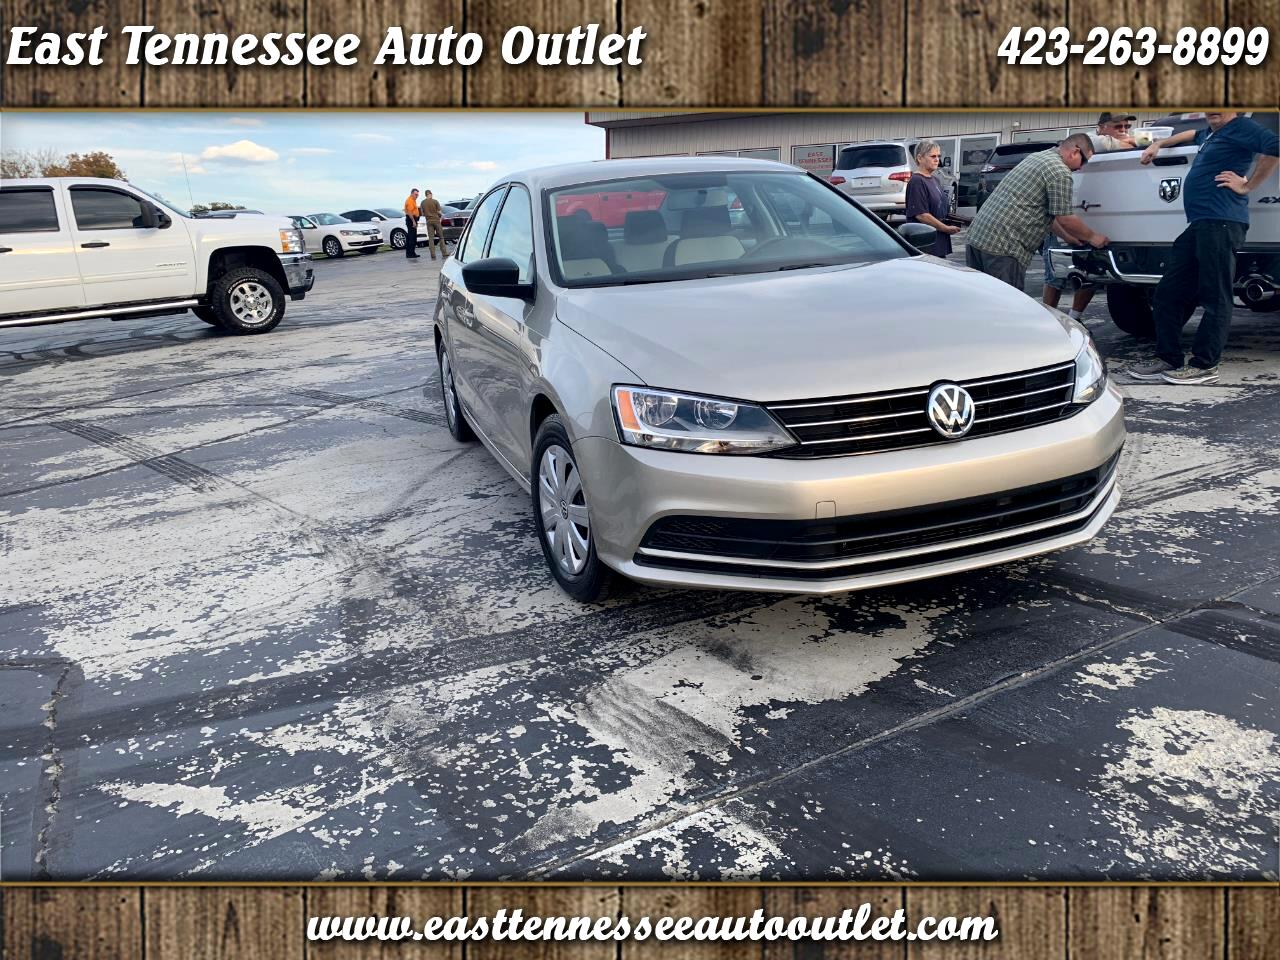 used 2015 volkswagen jetta sedan 4dr man 2 0l s w technology for sale in athens tn 37303 east. Black Bedroom Furniture Sets. Home Design Ideas